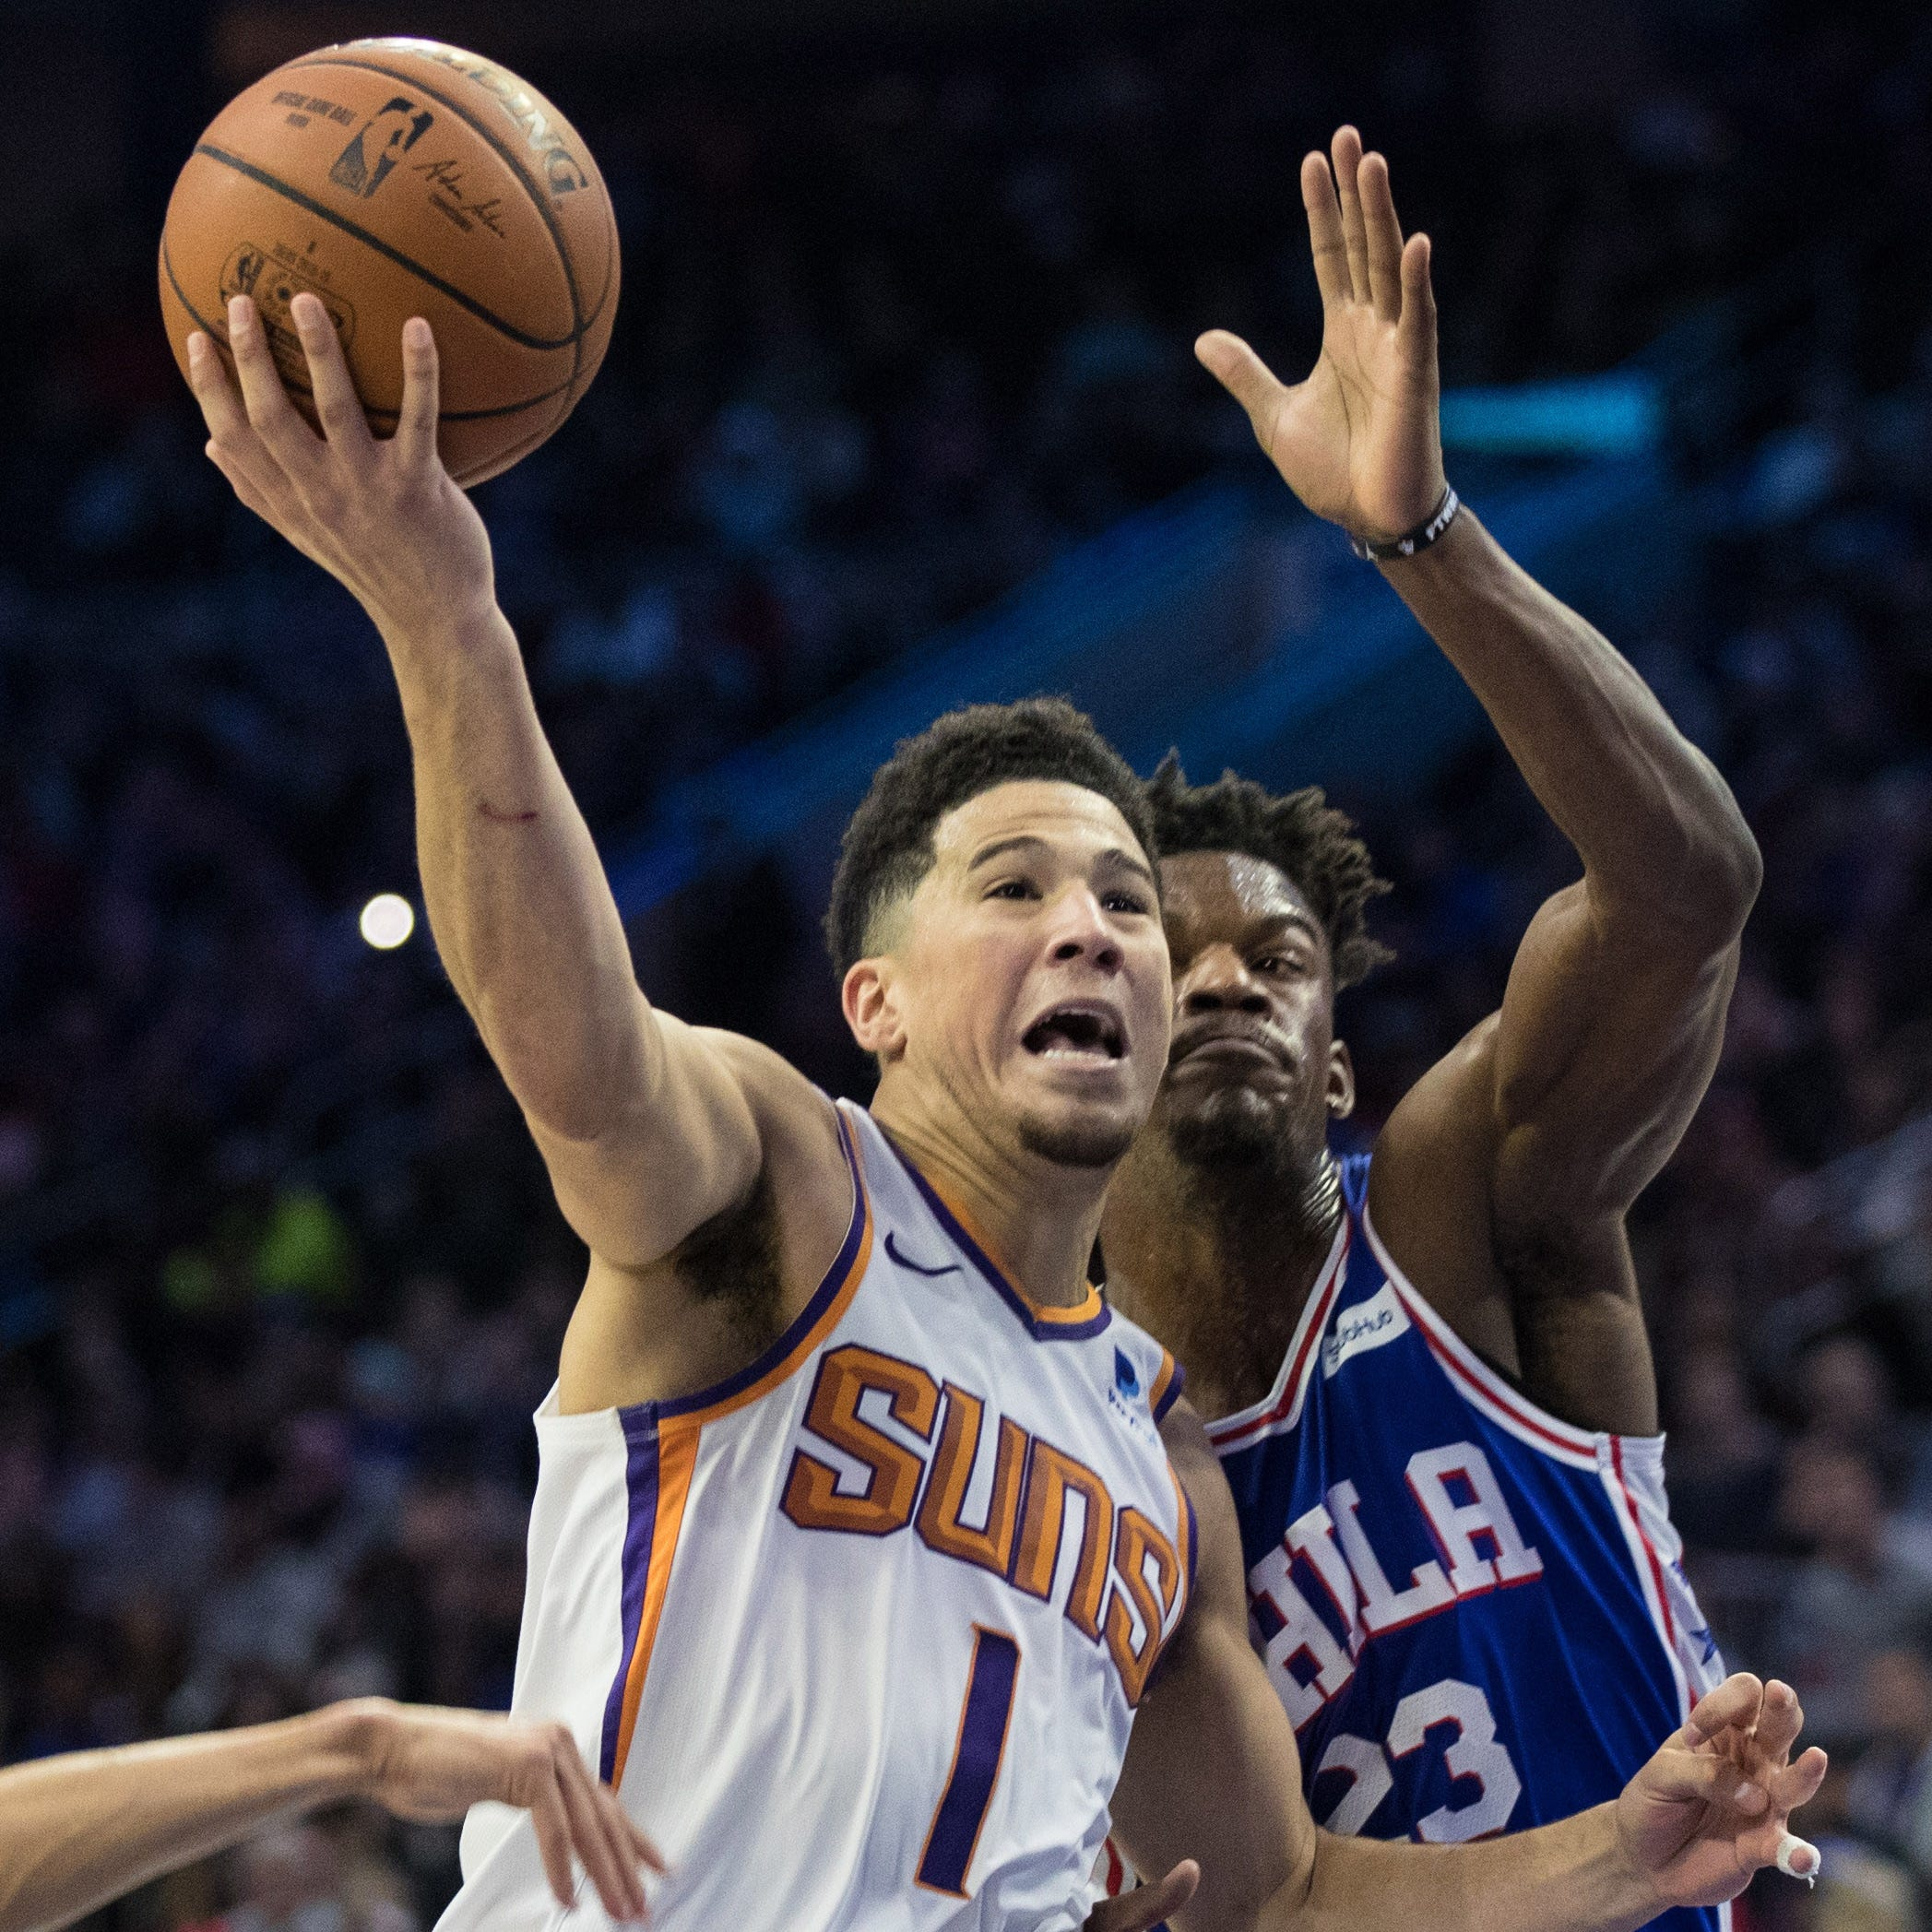 After Devin Booker's strong performance at point guard, how will Suns handle starting lineup?